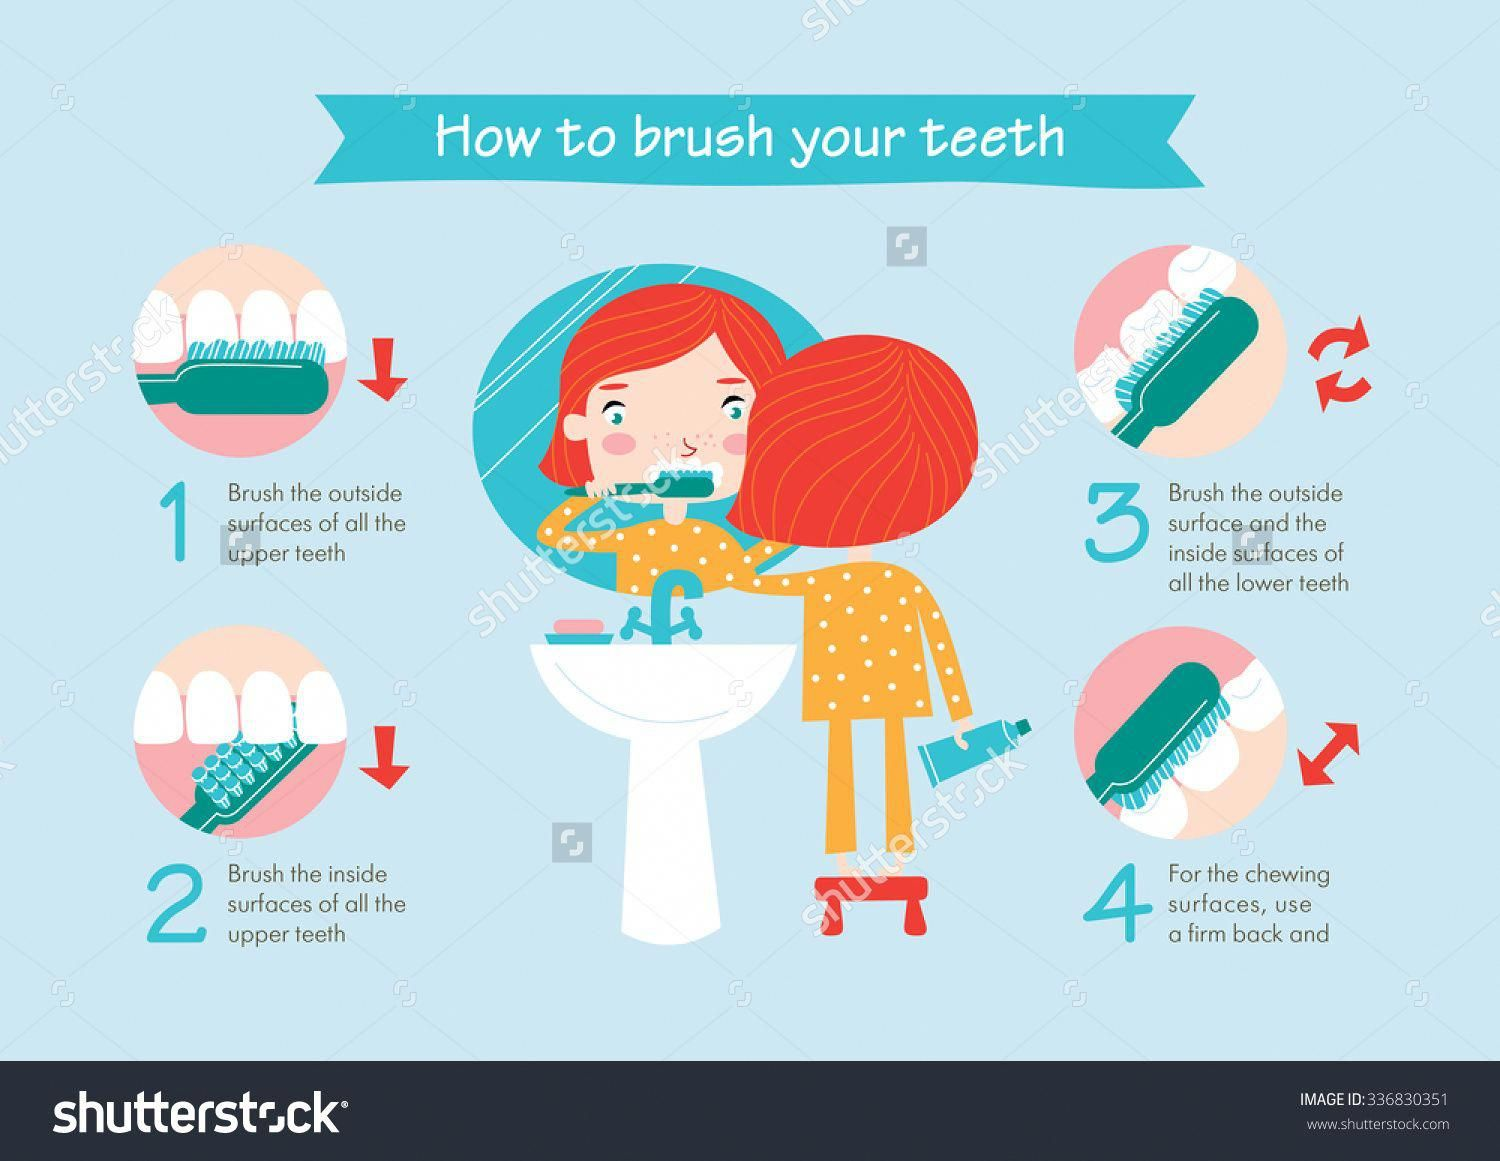 Instructions on how to brush your teeth for kids. Easy